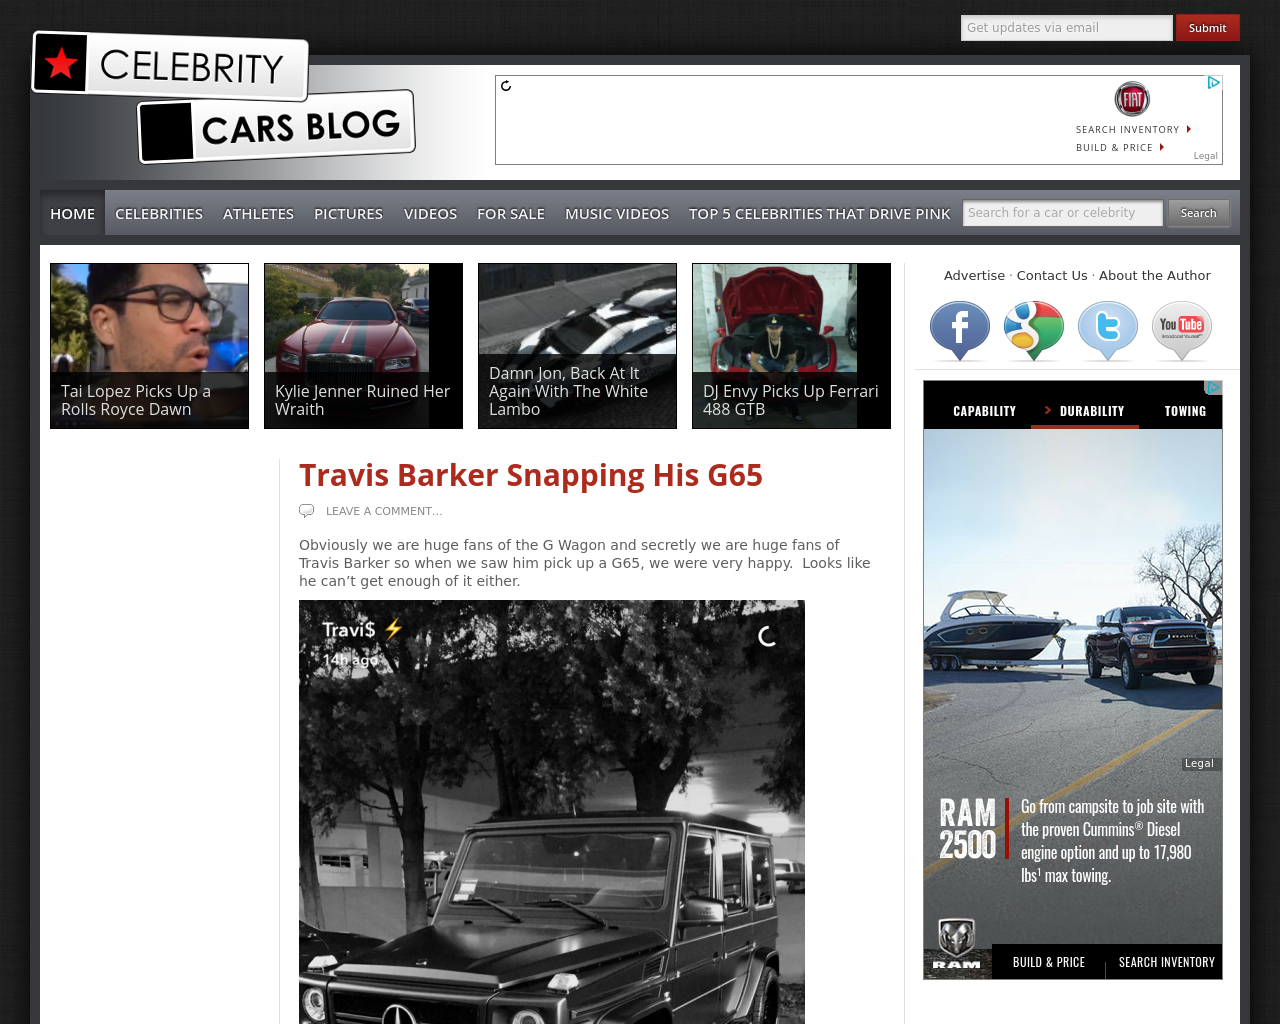 Celebrity-Cars-Blog-Advertising-Reviews-Pricing